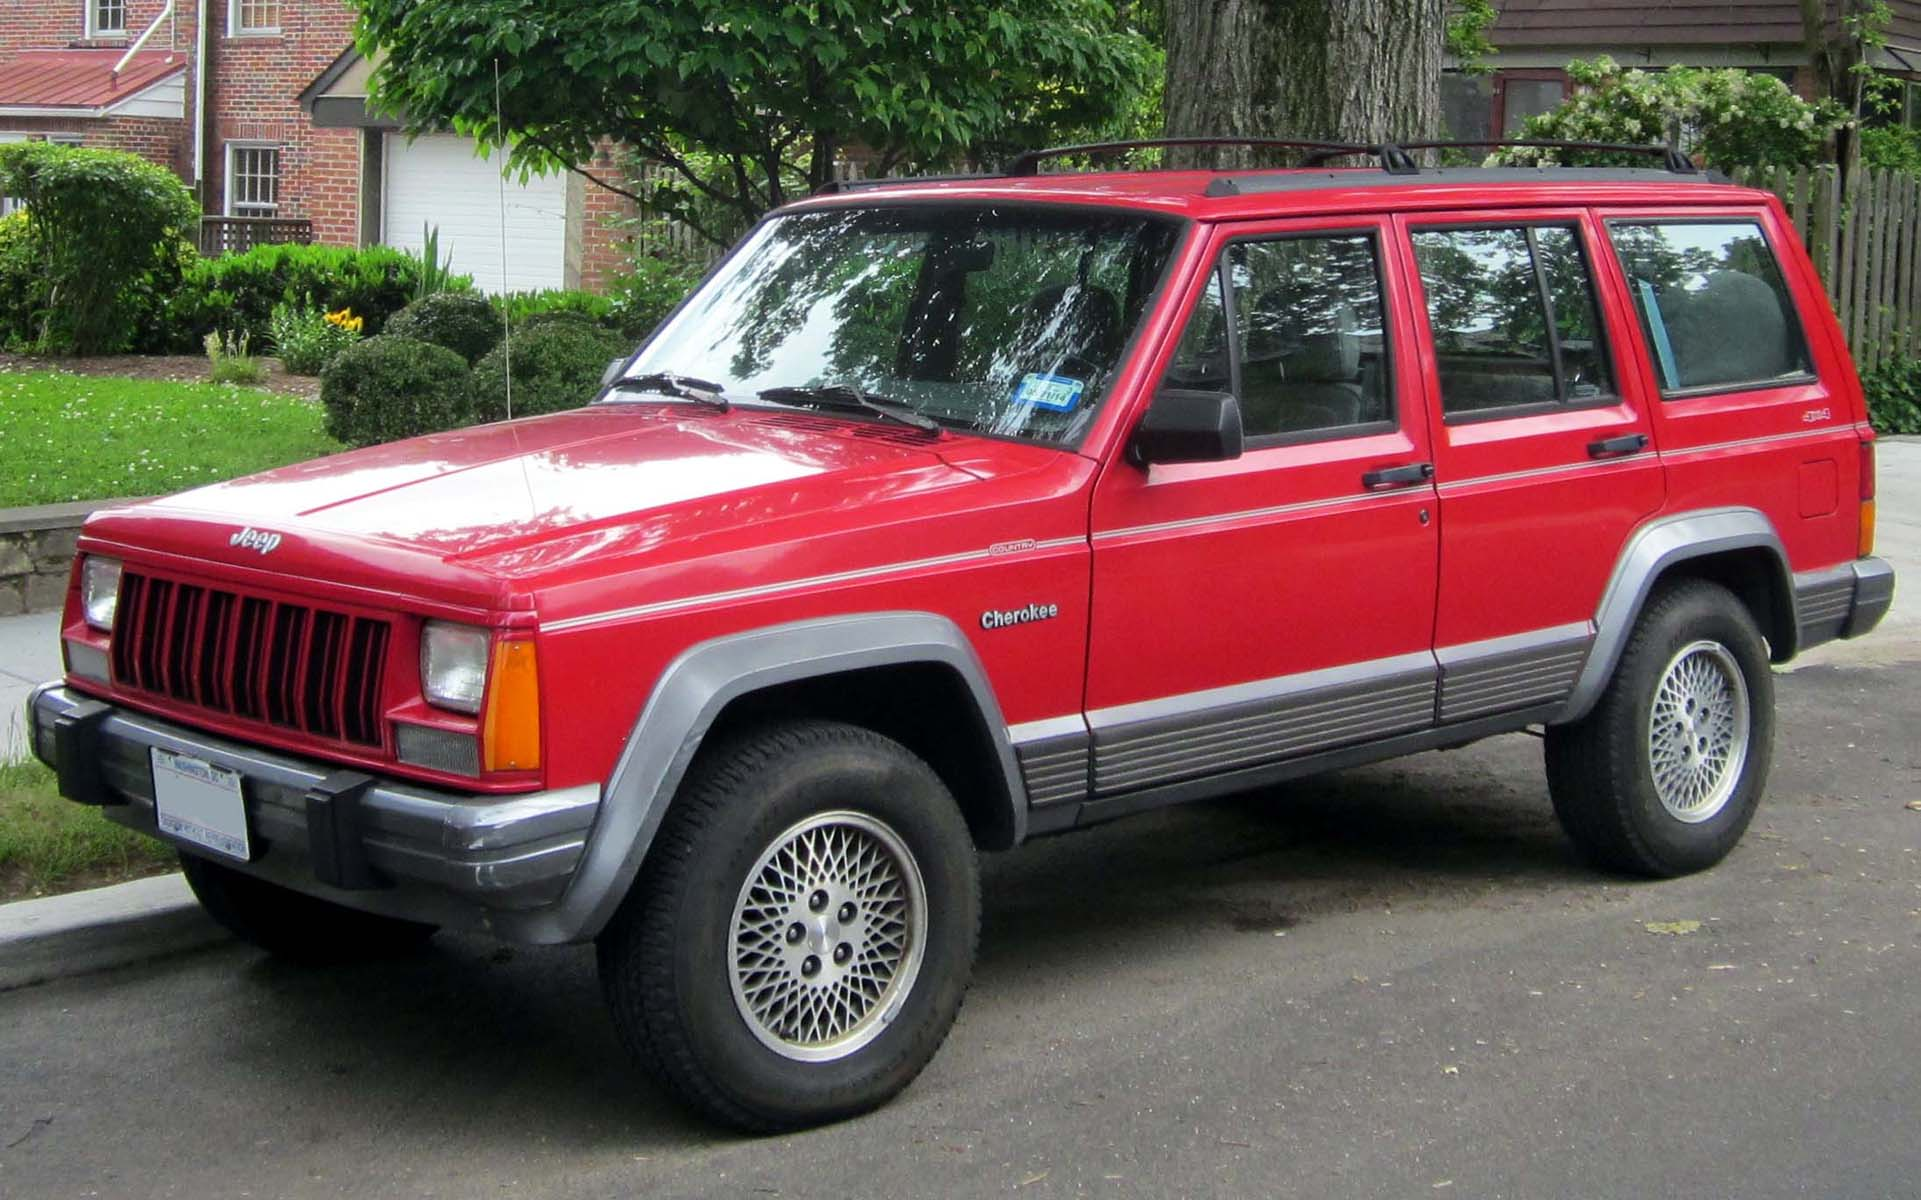 File:Jeep Cherokee Country -- 05-23-2012.JPG - Wikimedia Commons